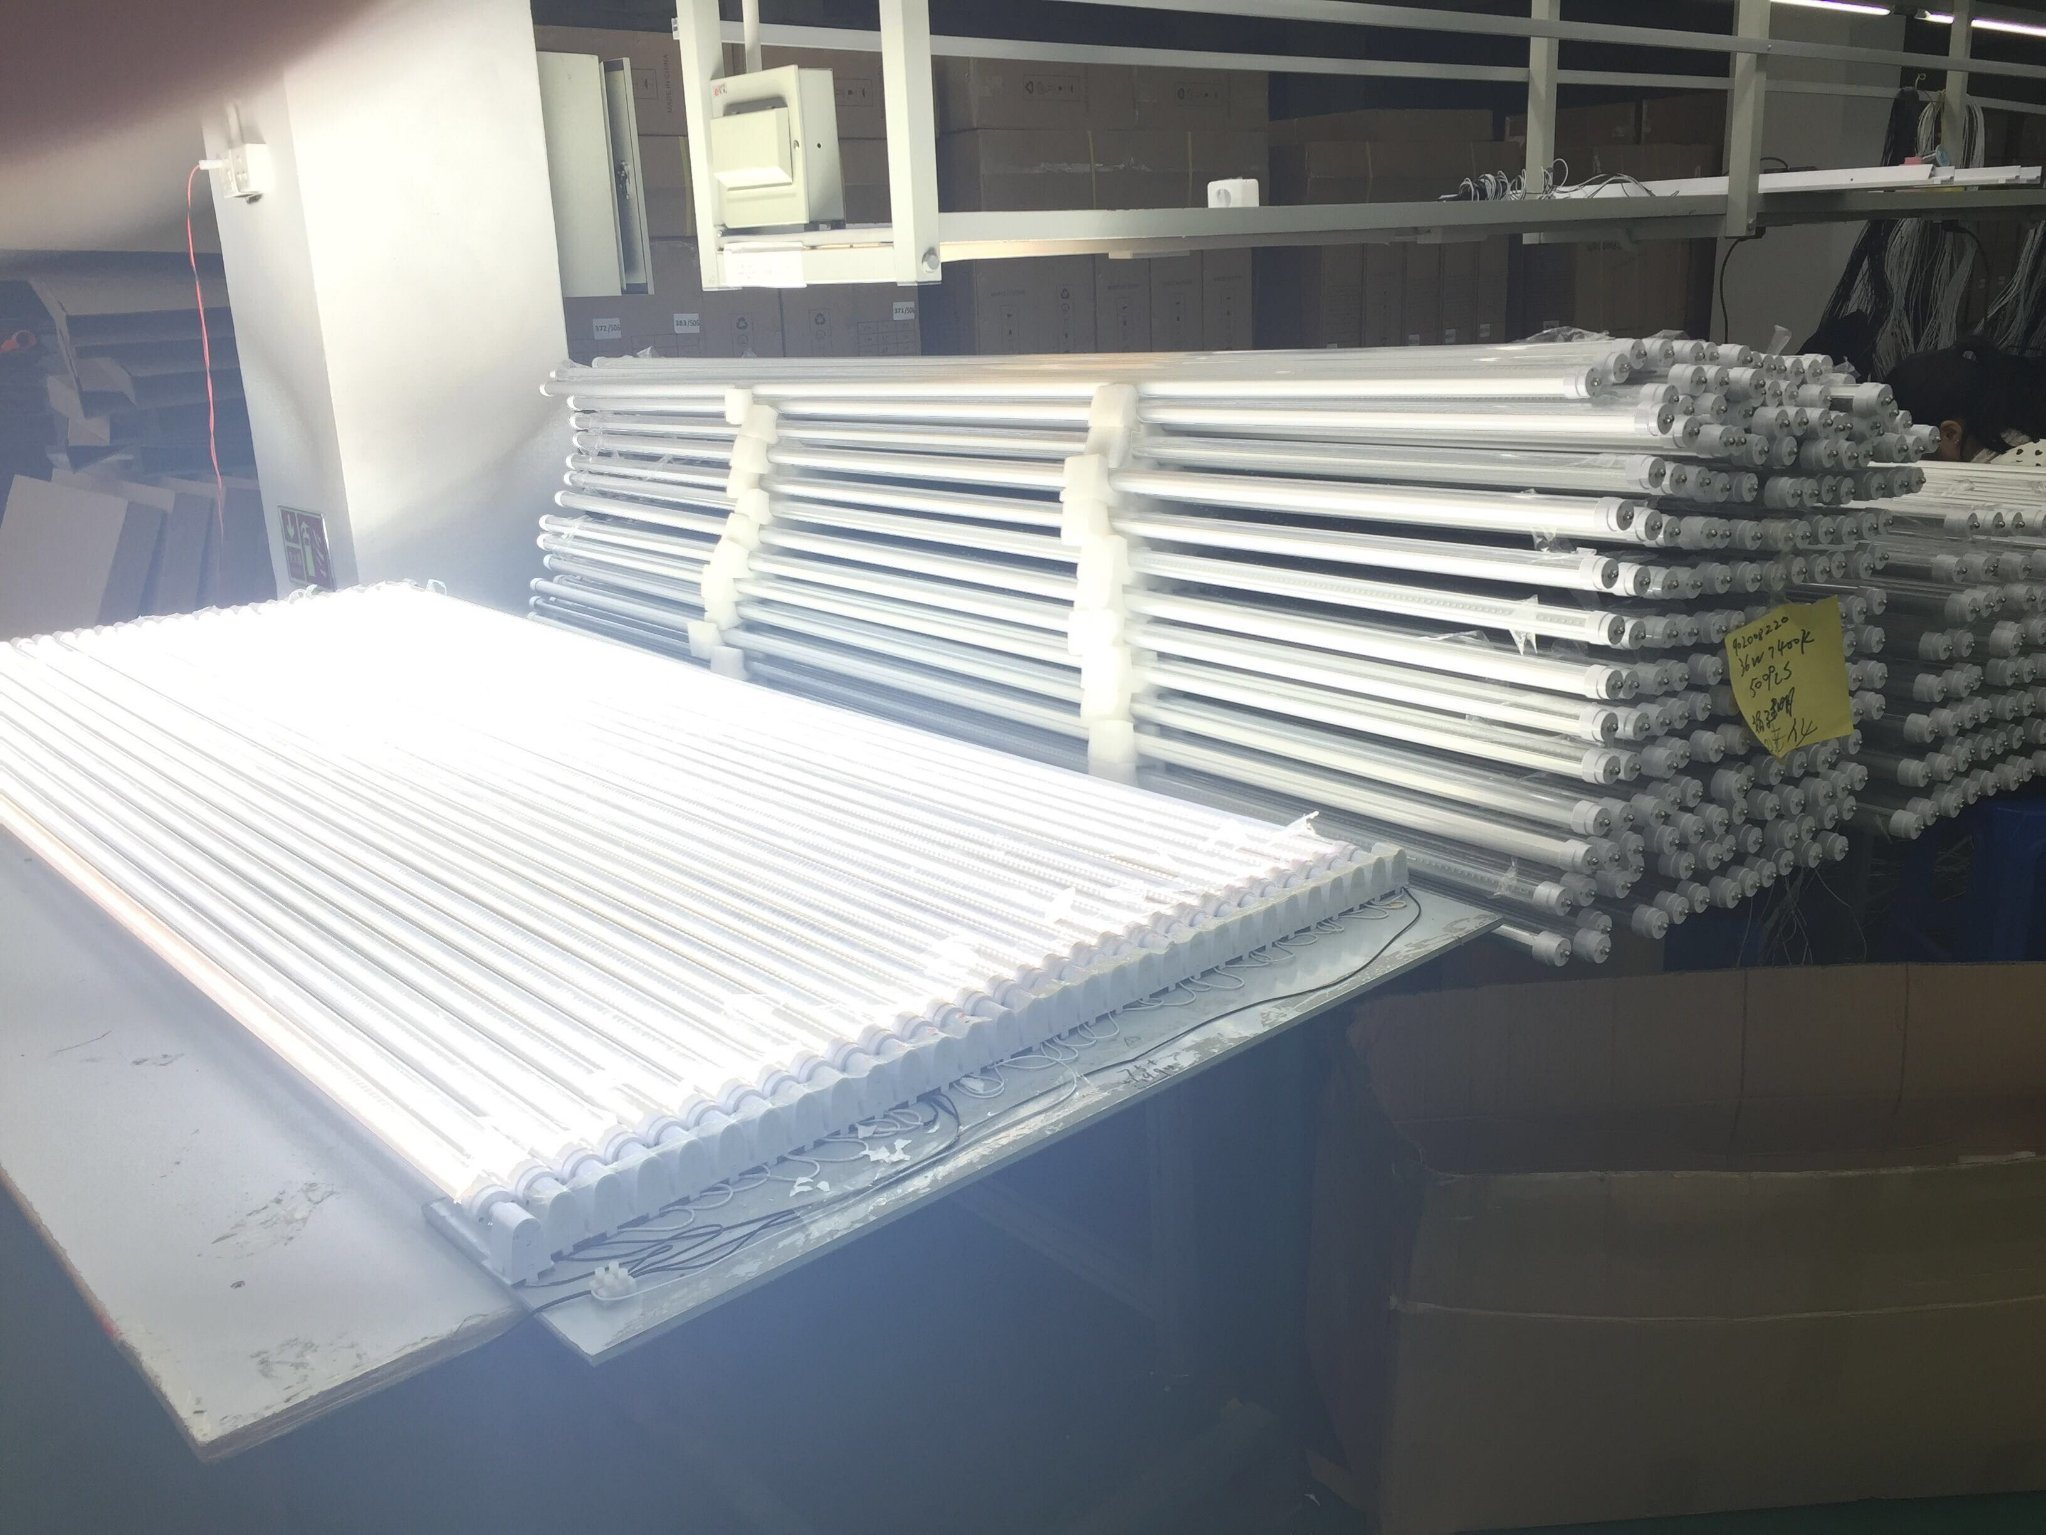 China Lamps 10w 12w 16w 20w 36w 40w Integrated Led Tube Fluorescent Light Circuit With Epistar Chips T8